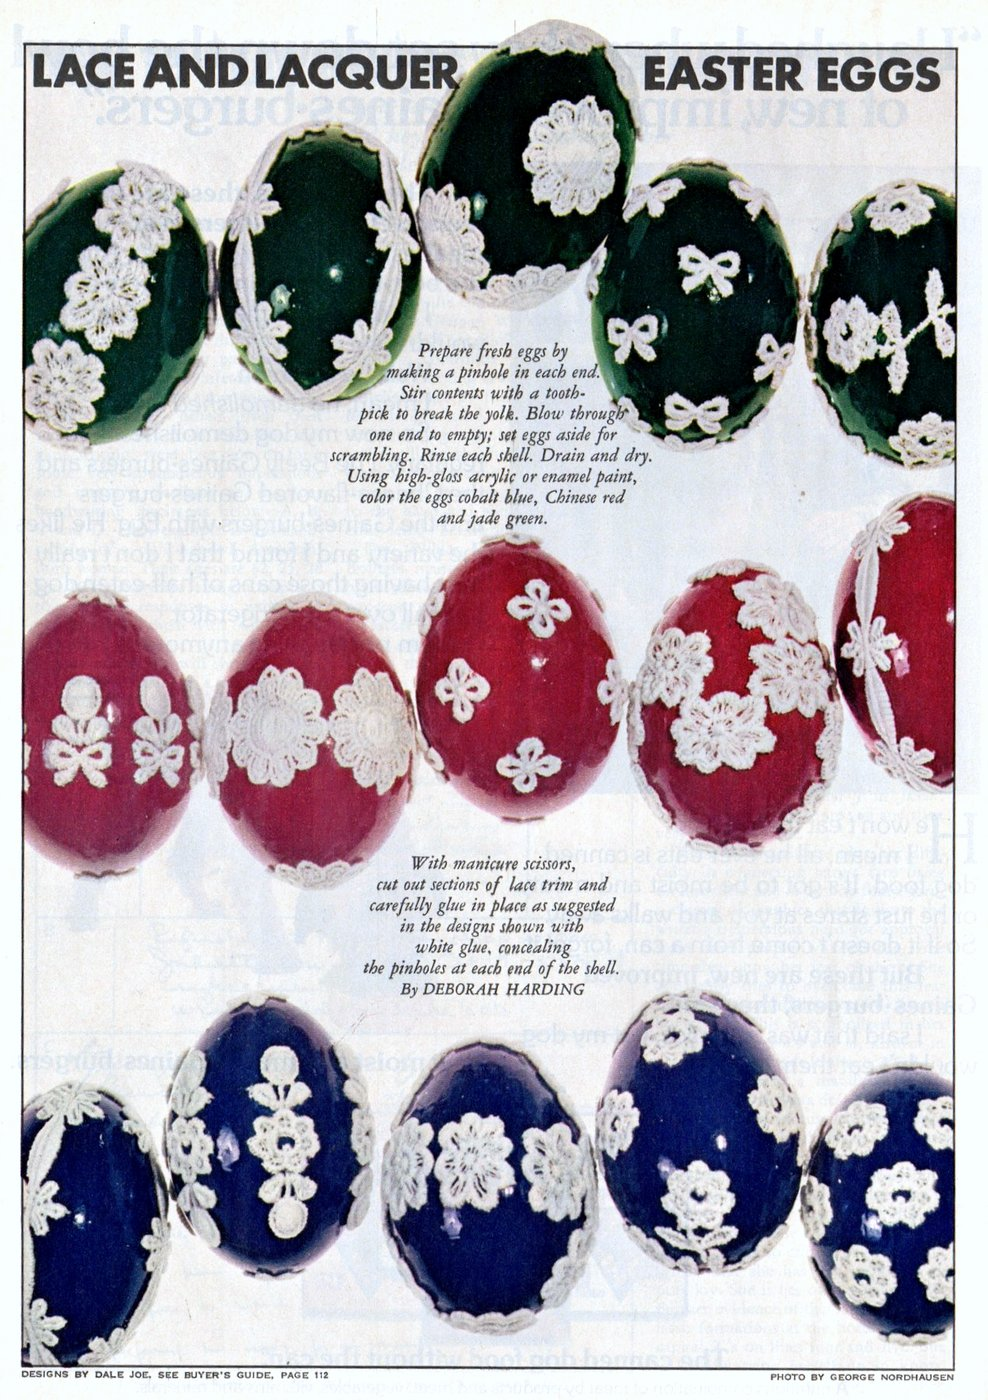 Lace and lacquer Easter egg crafts (1975)